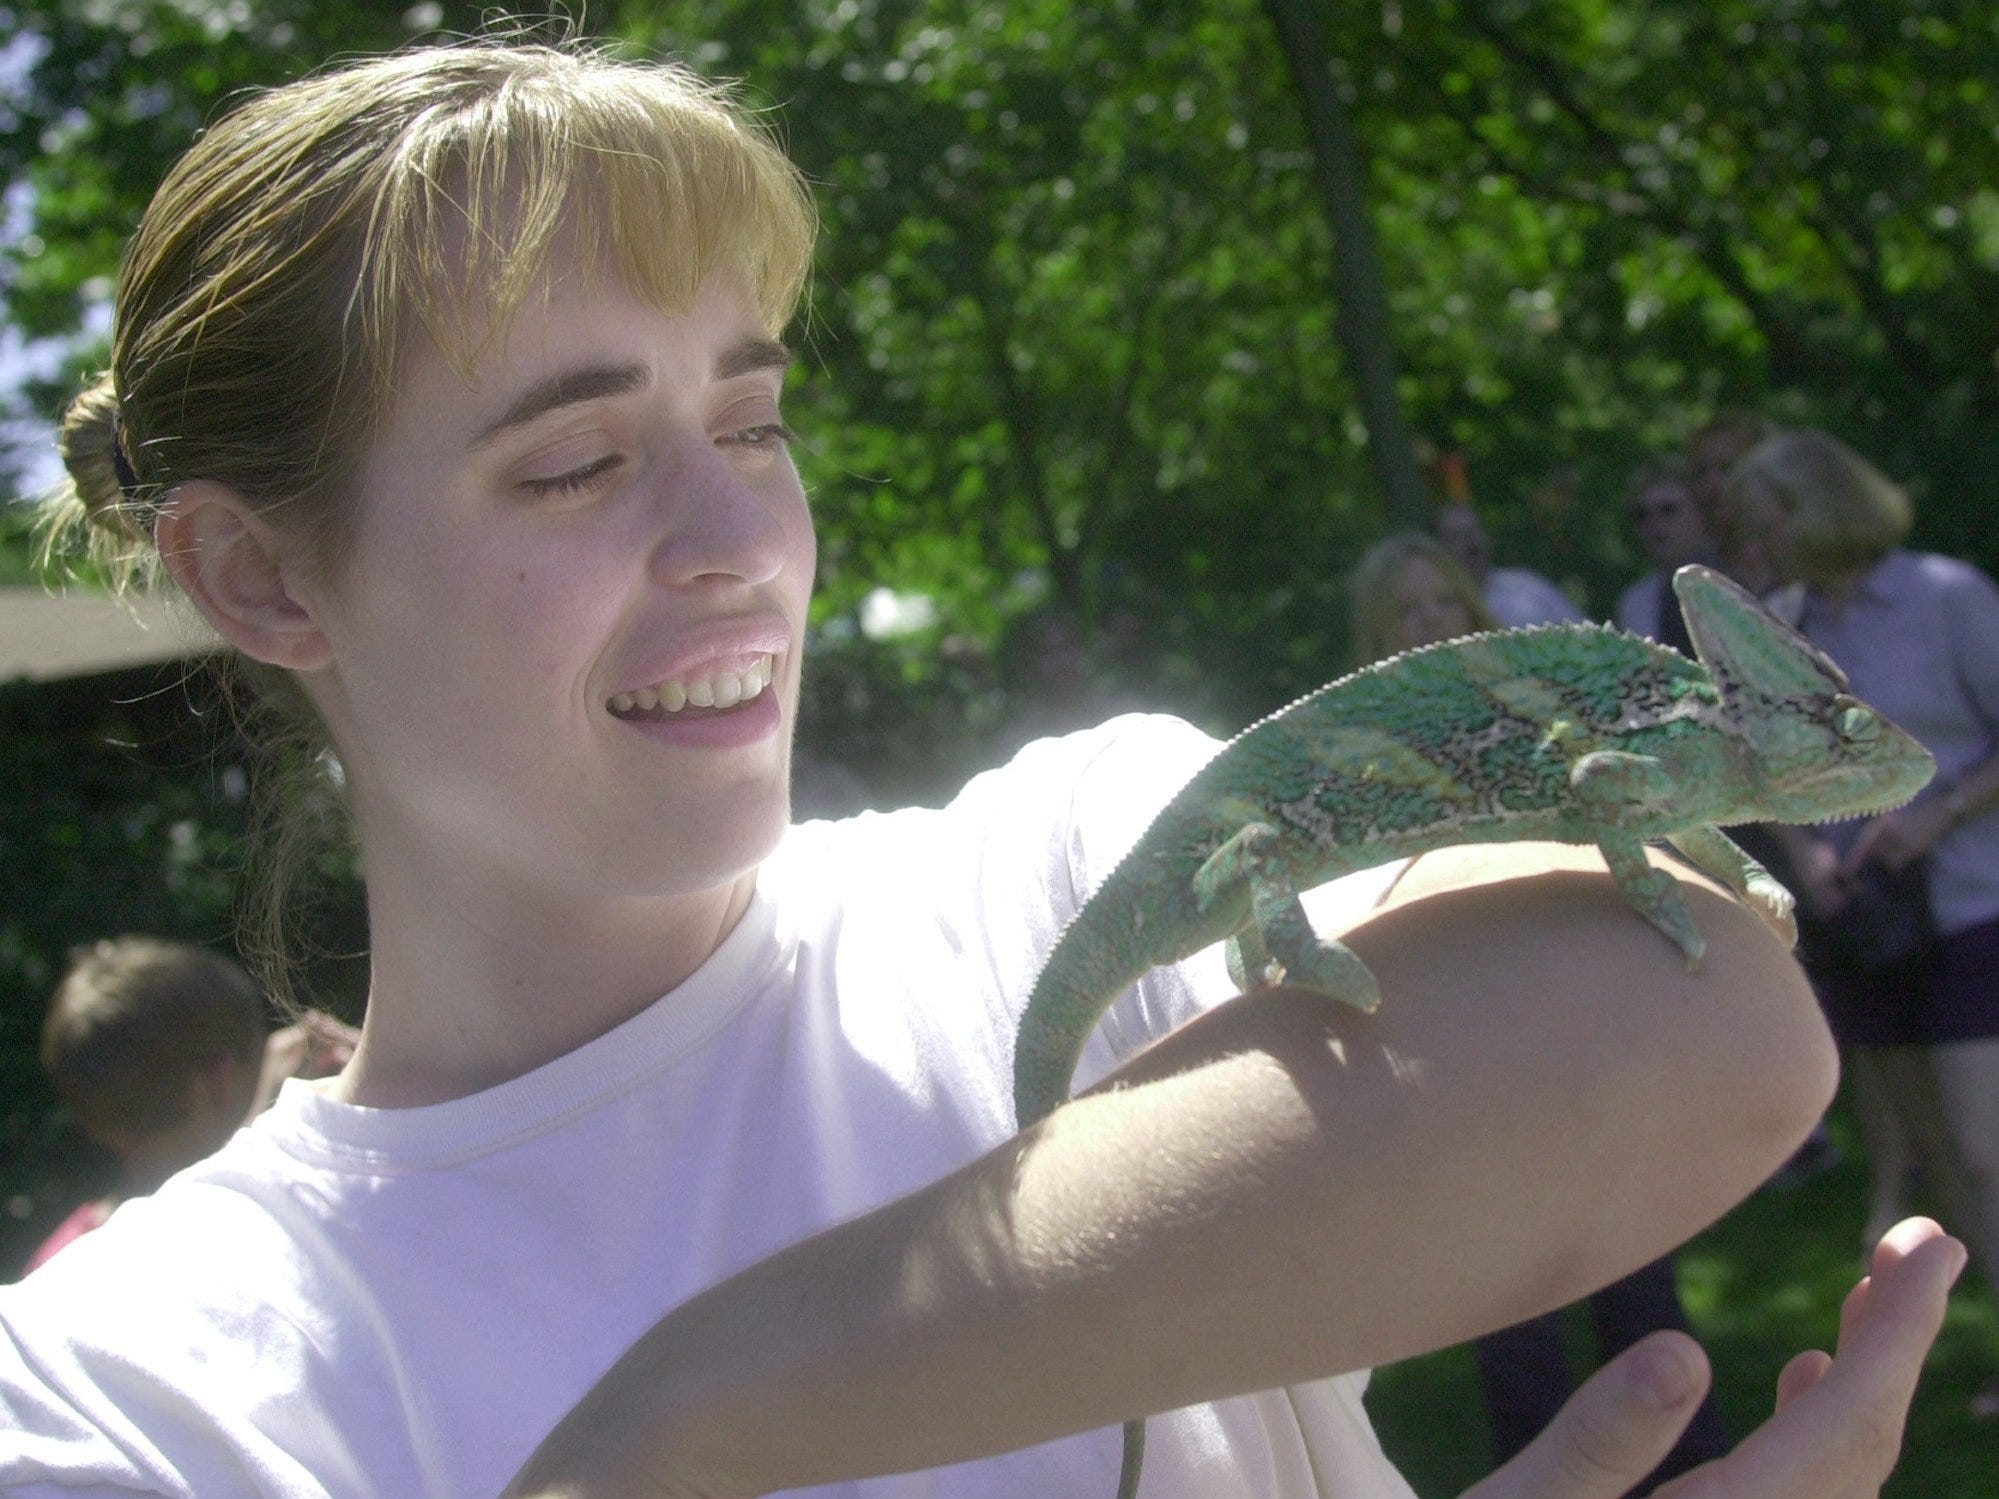 Faith DenHerder of Grandville holds Radar the chameleon in 2001